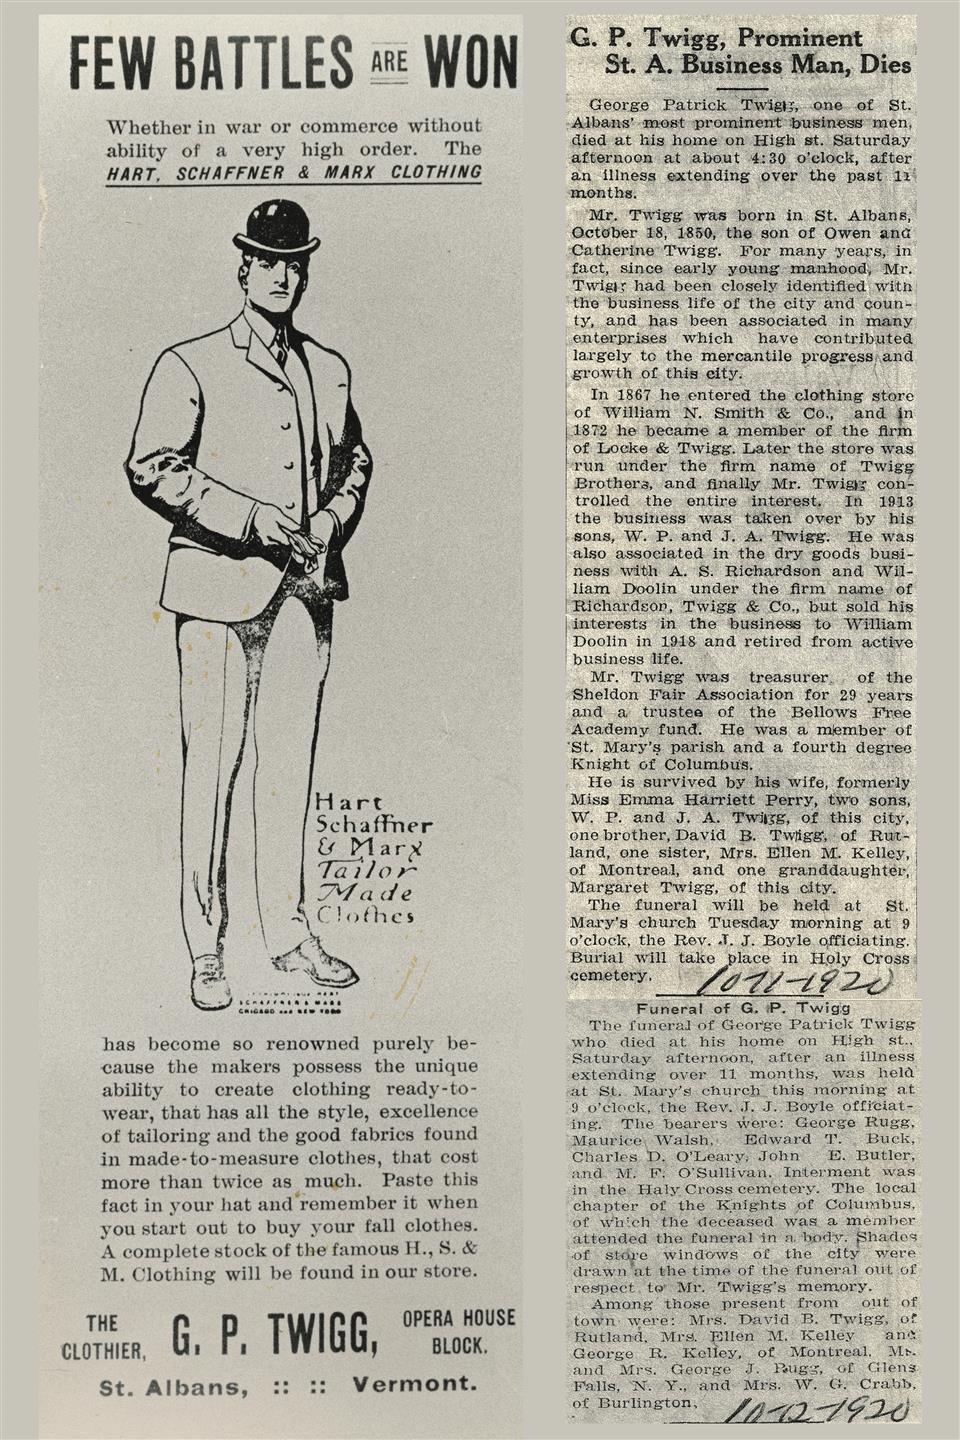 an old twiggs advertisement, and a newspaper clipping announcing the death of twigg's founder